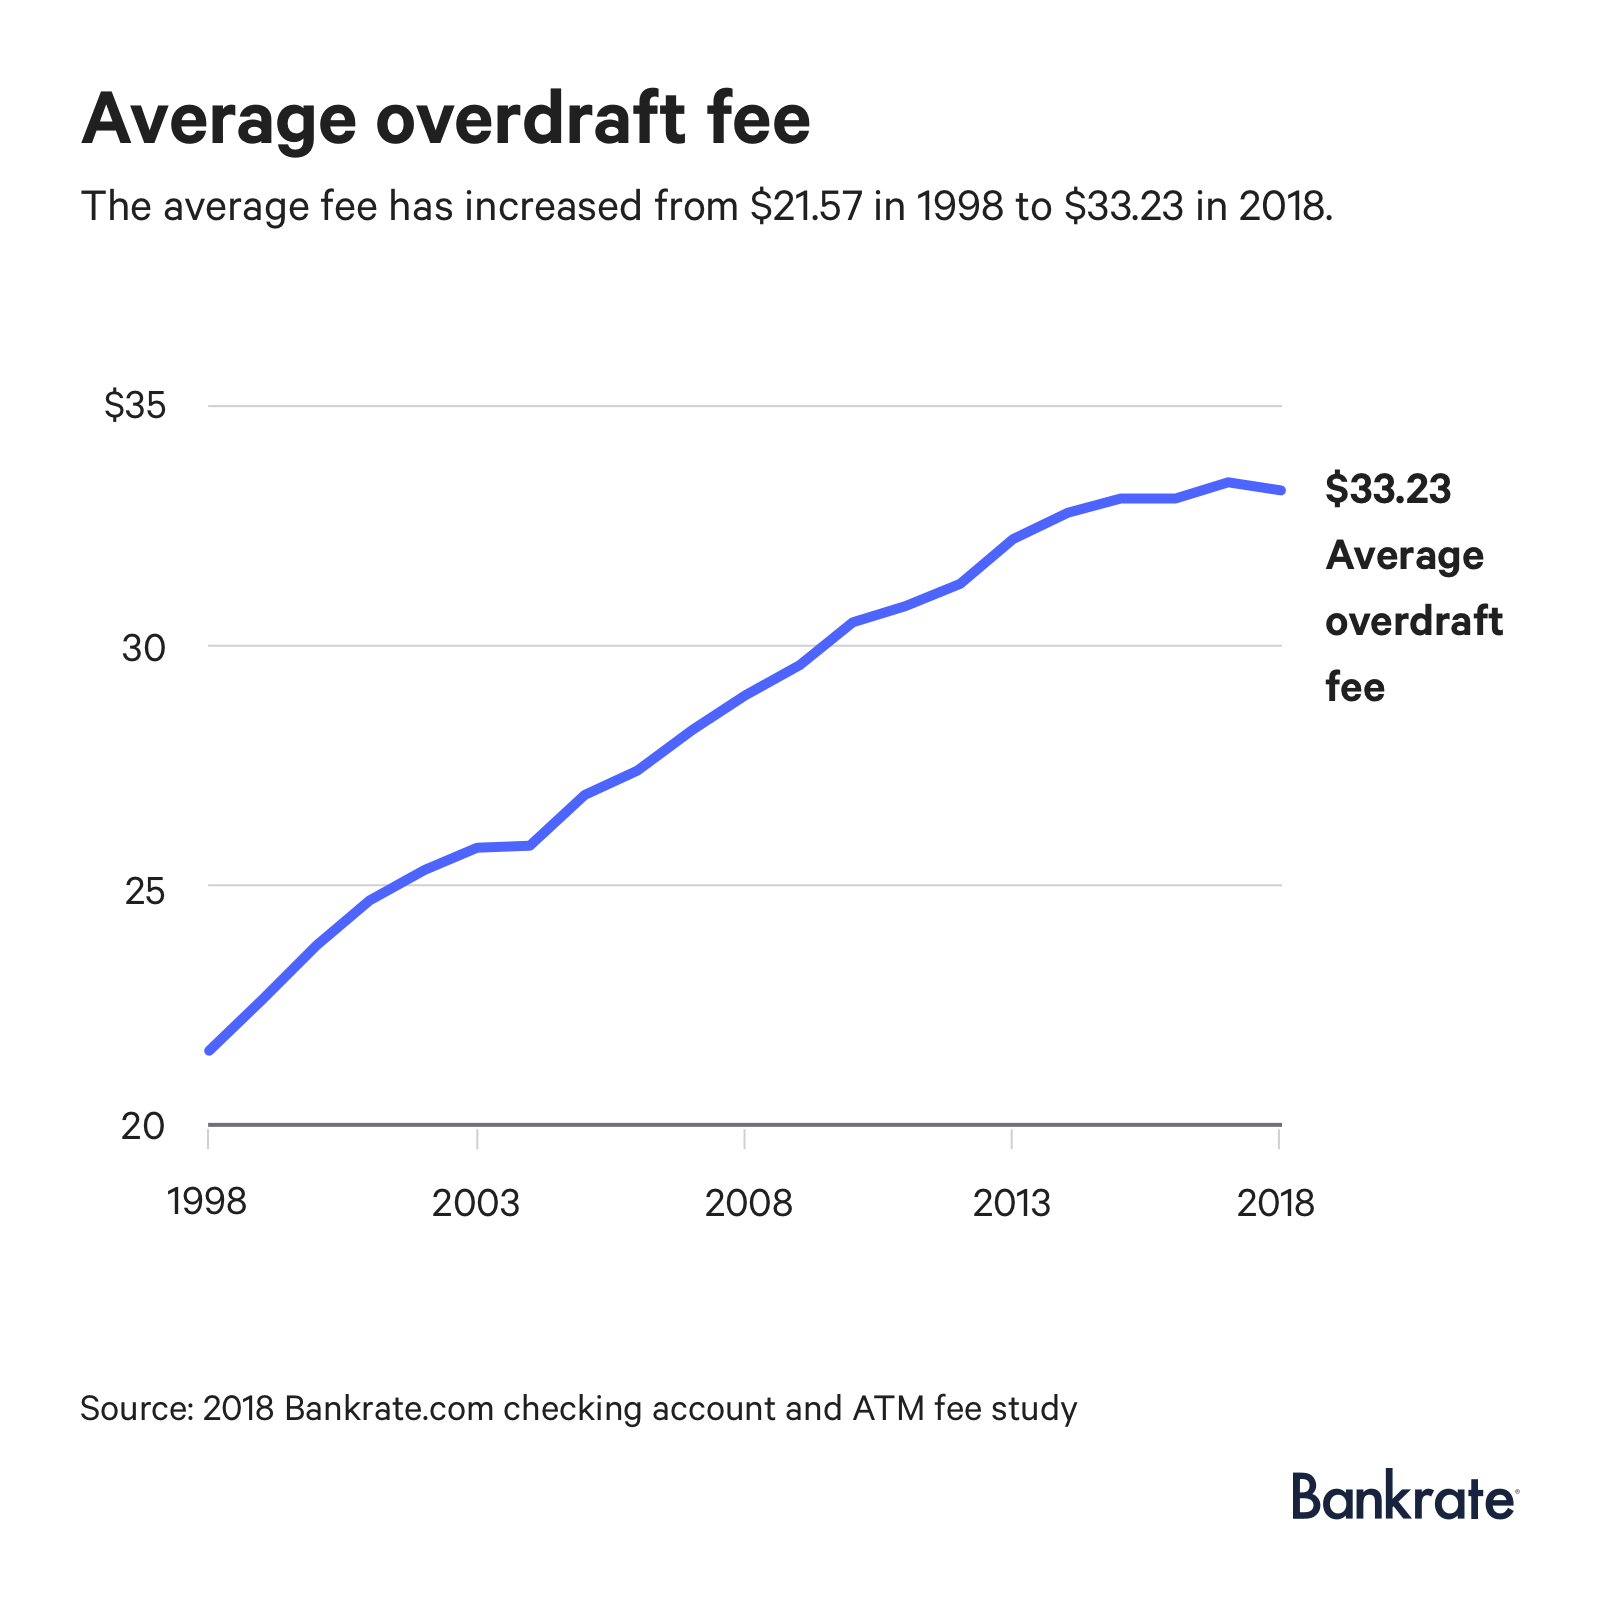 Graph: The average overdraft fee has increased from $21.57 in 1998 to $33.23 in 2018.